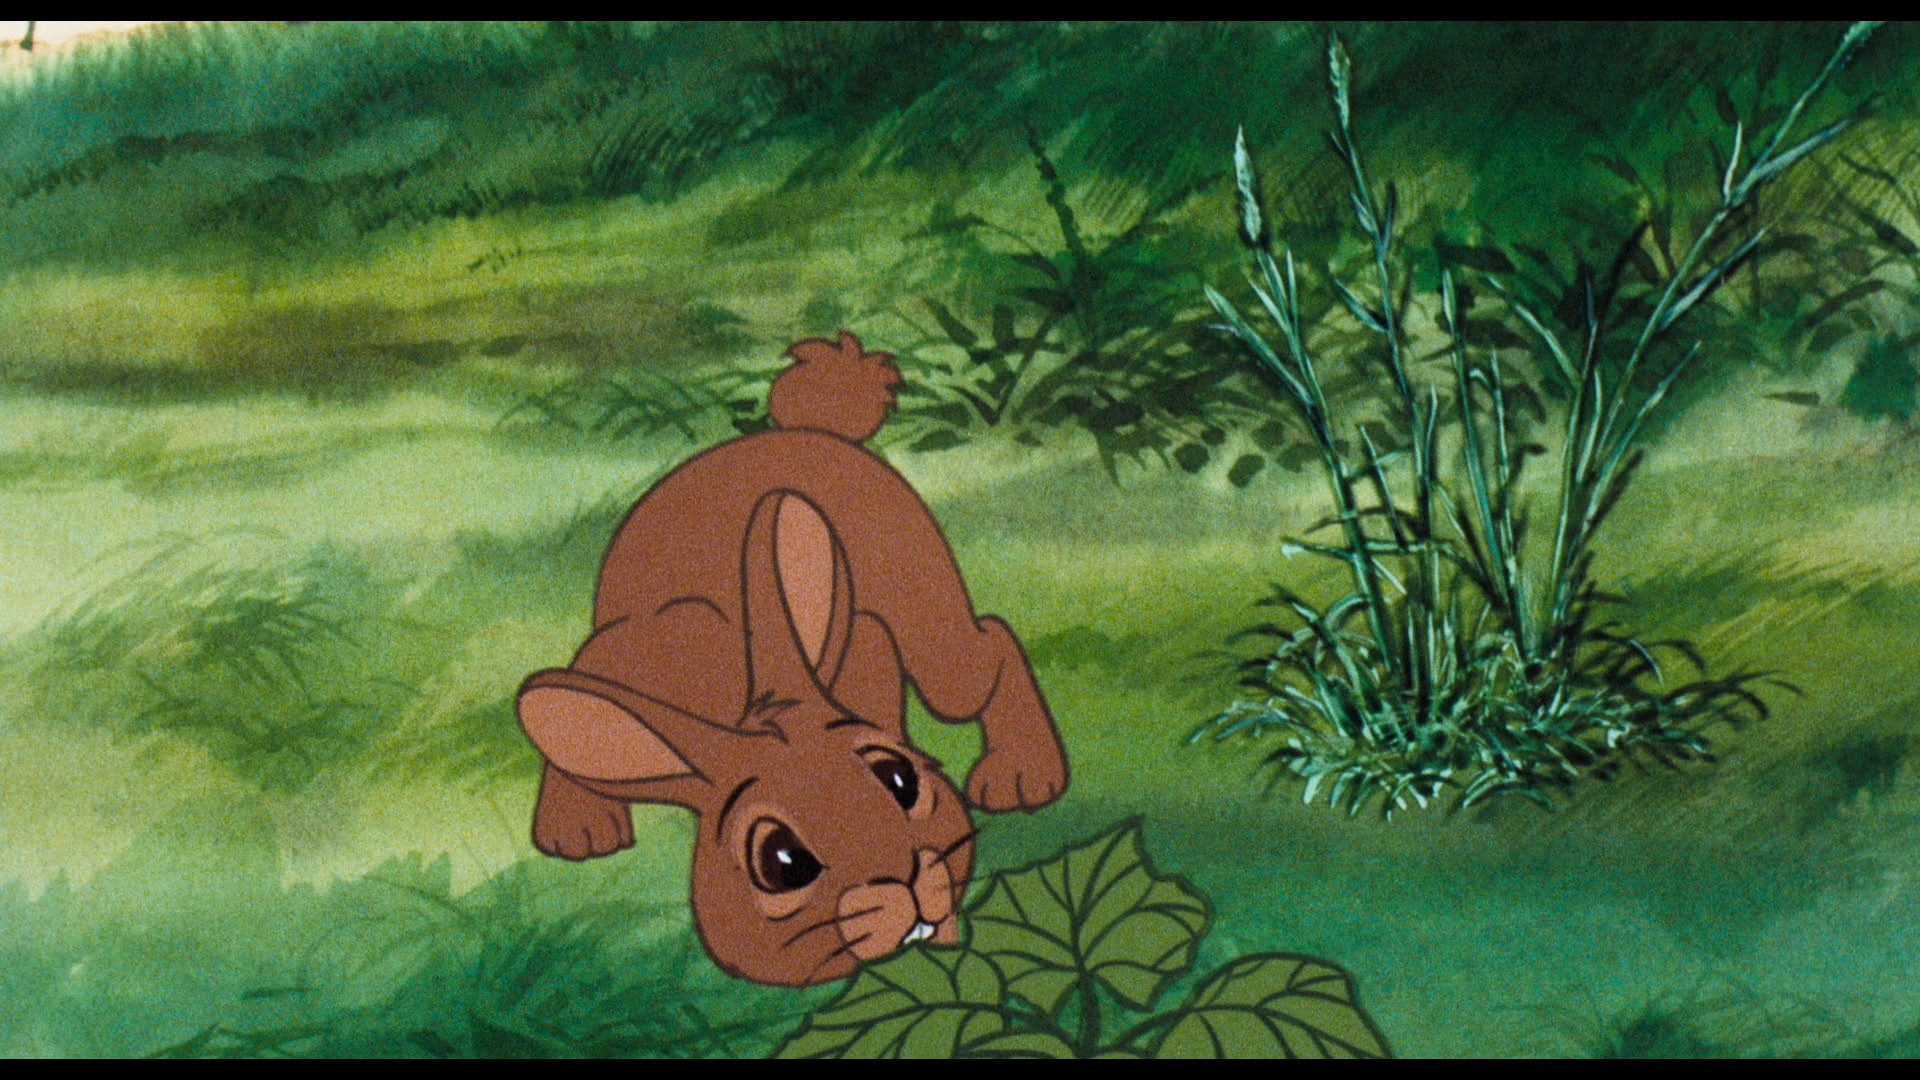 WARNING: This is the last moment of happiness in the entire film. And it's within the first 5 minutes.